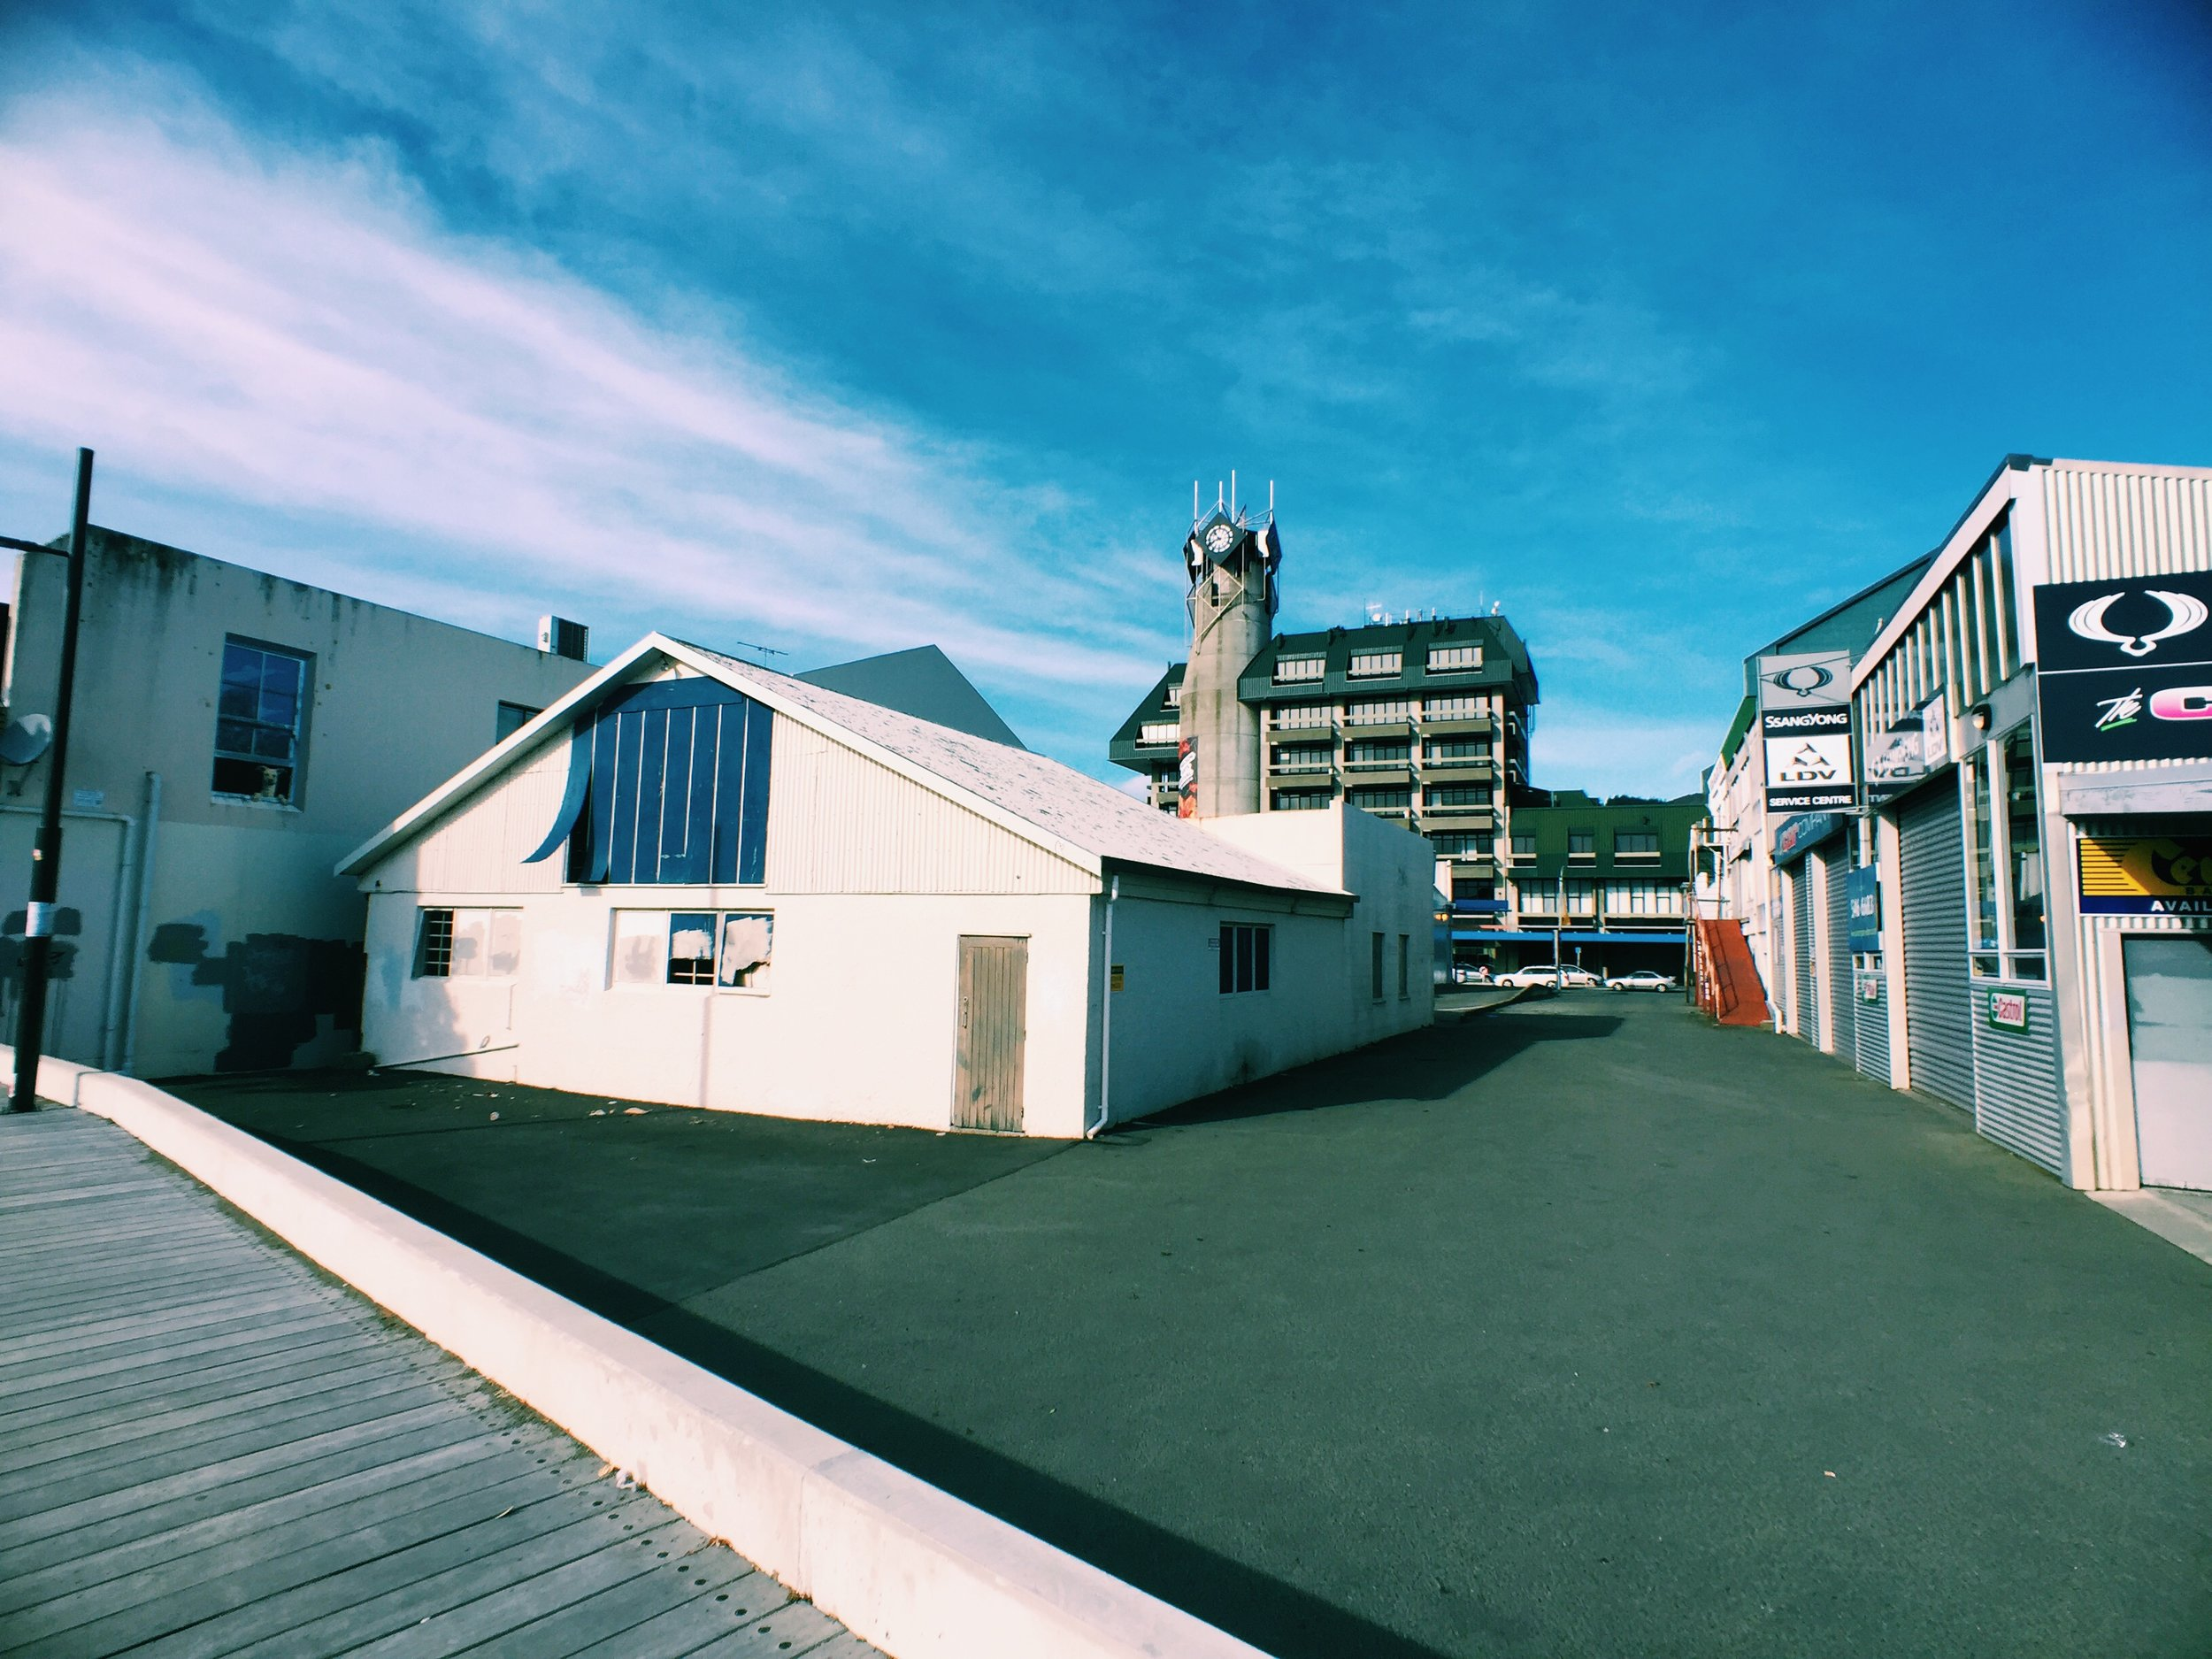 Alley way in Nelson, New Zealand